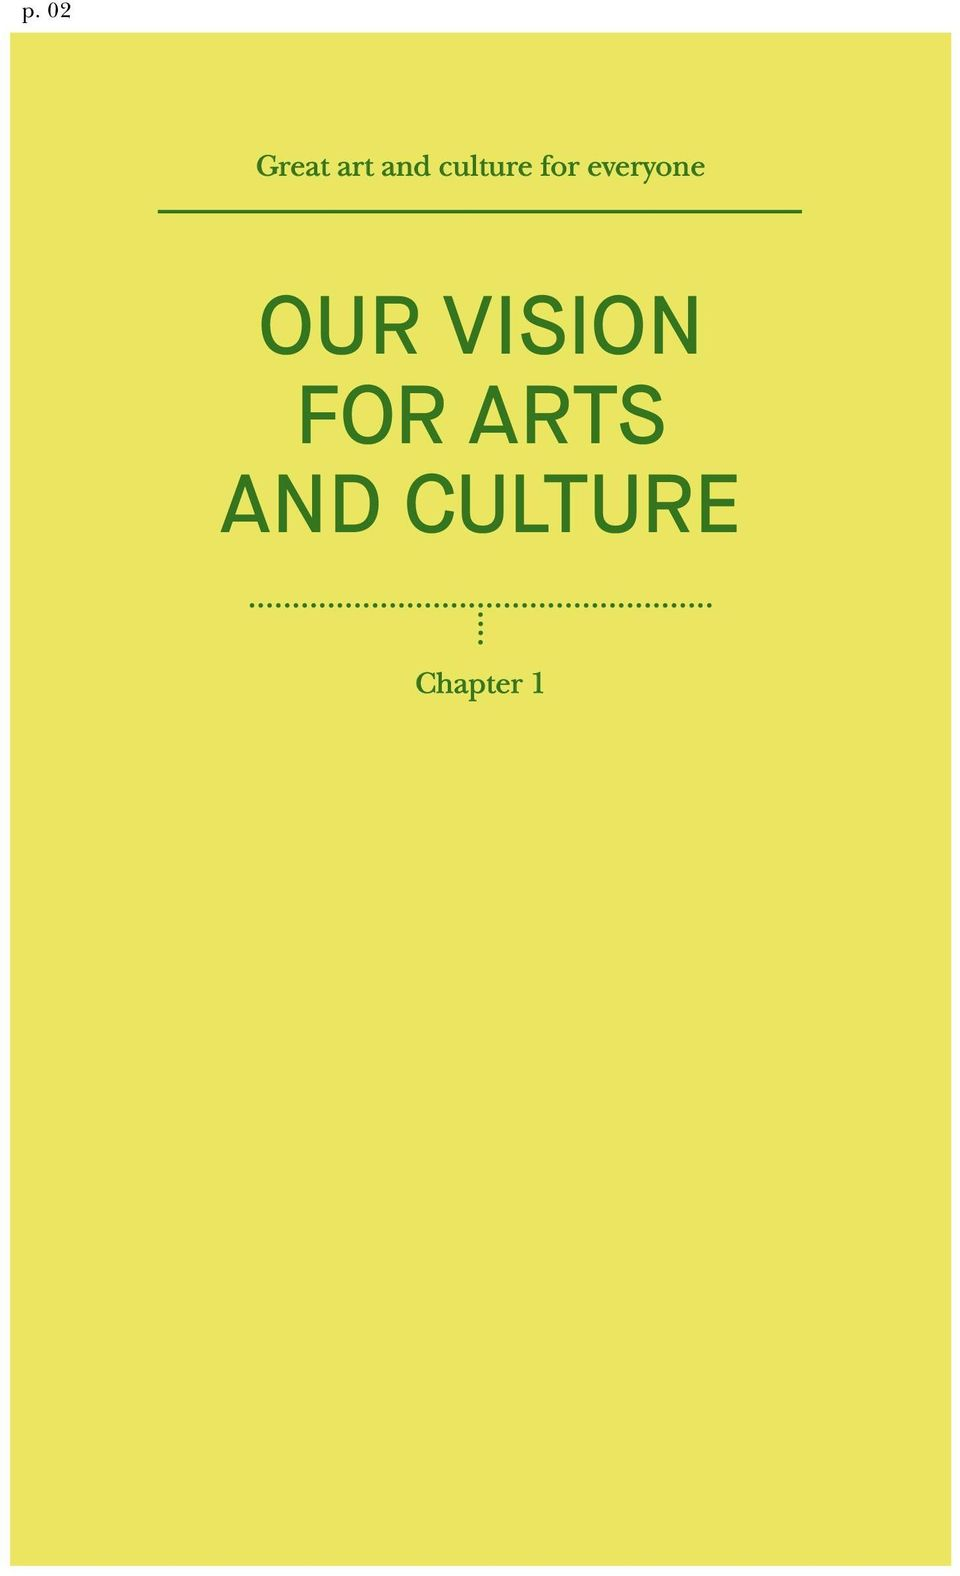 OUR VISION FOR ARTS